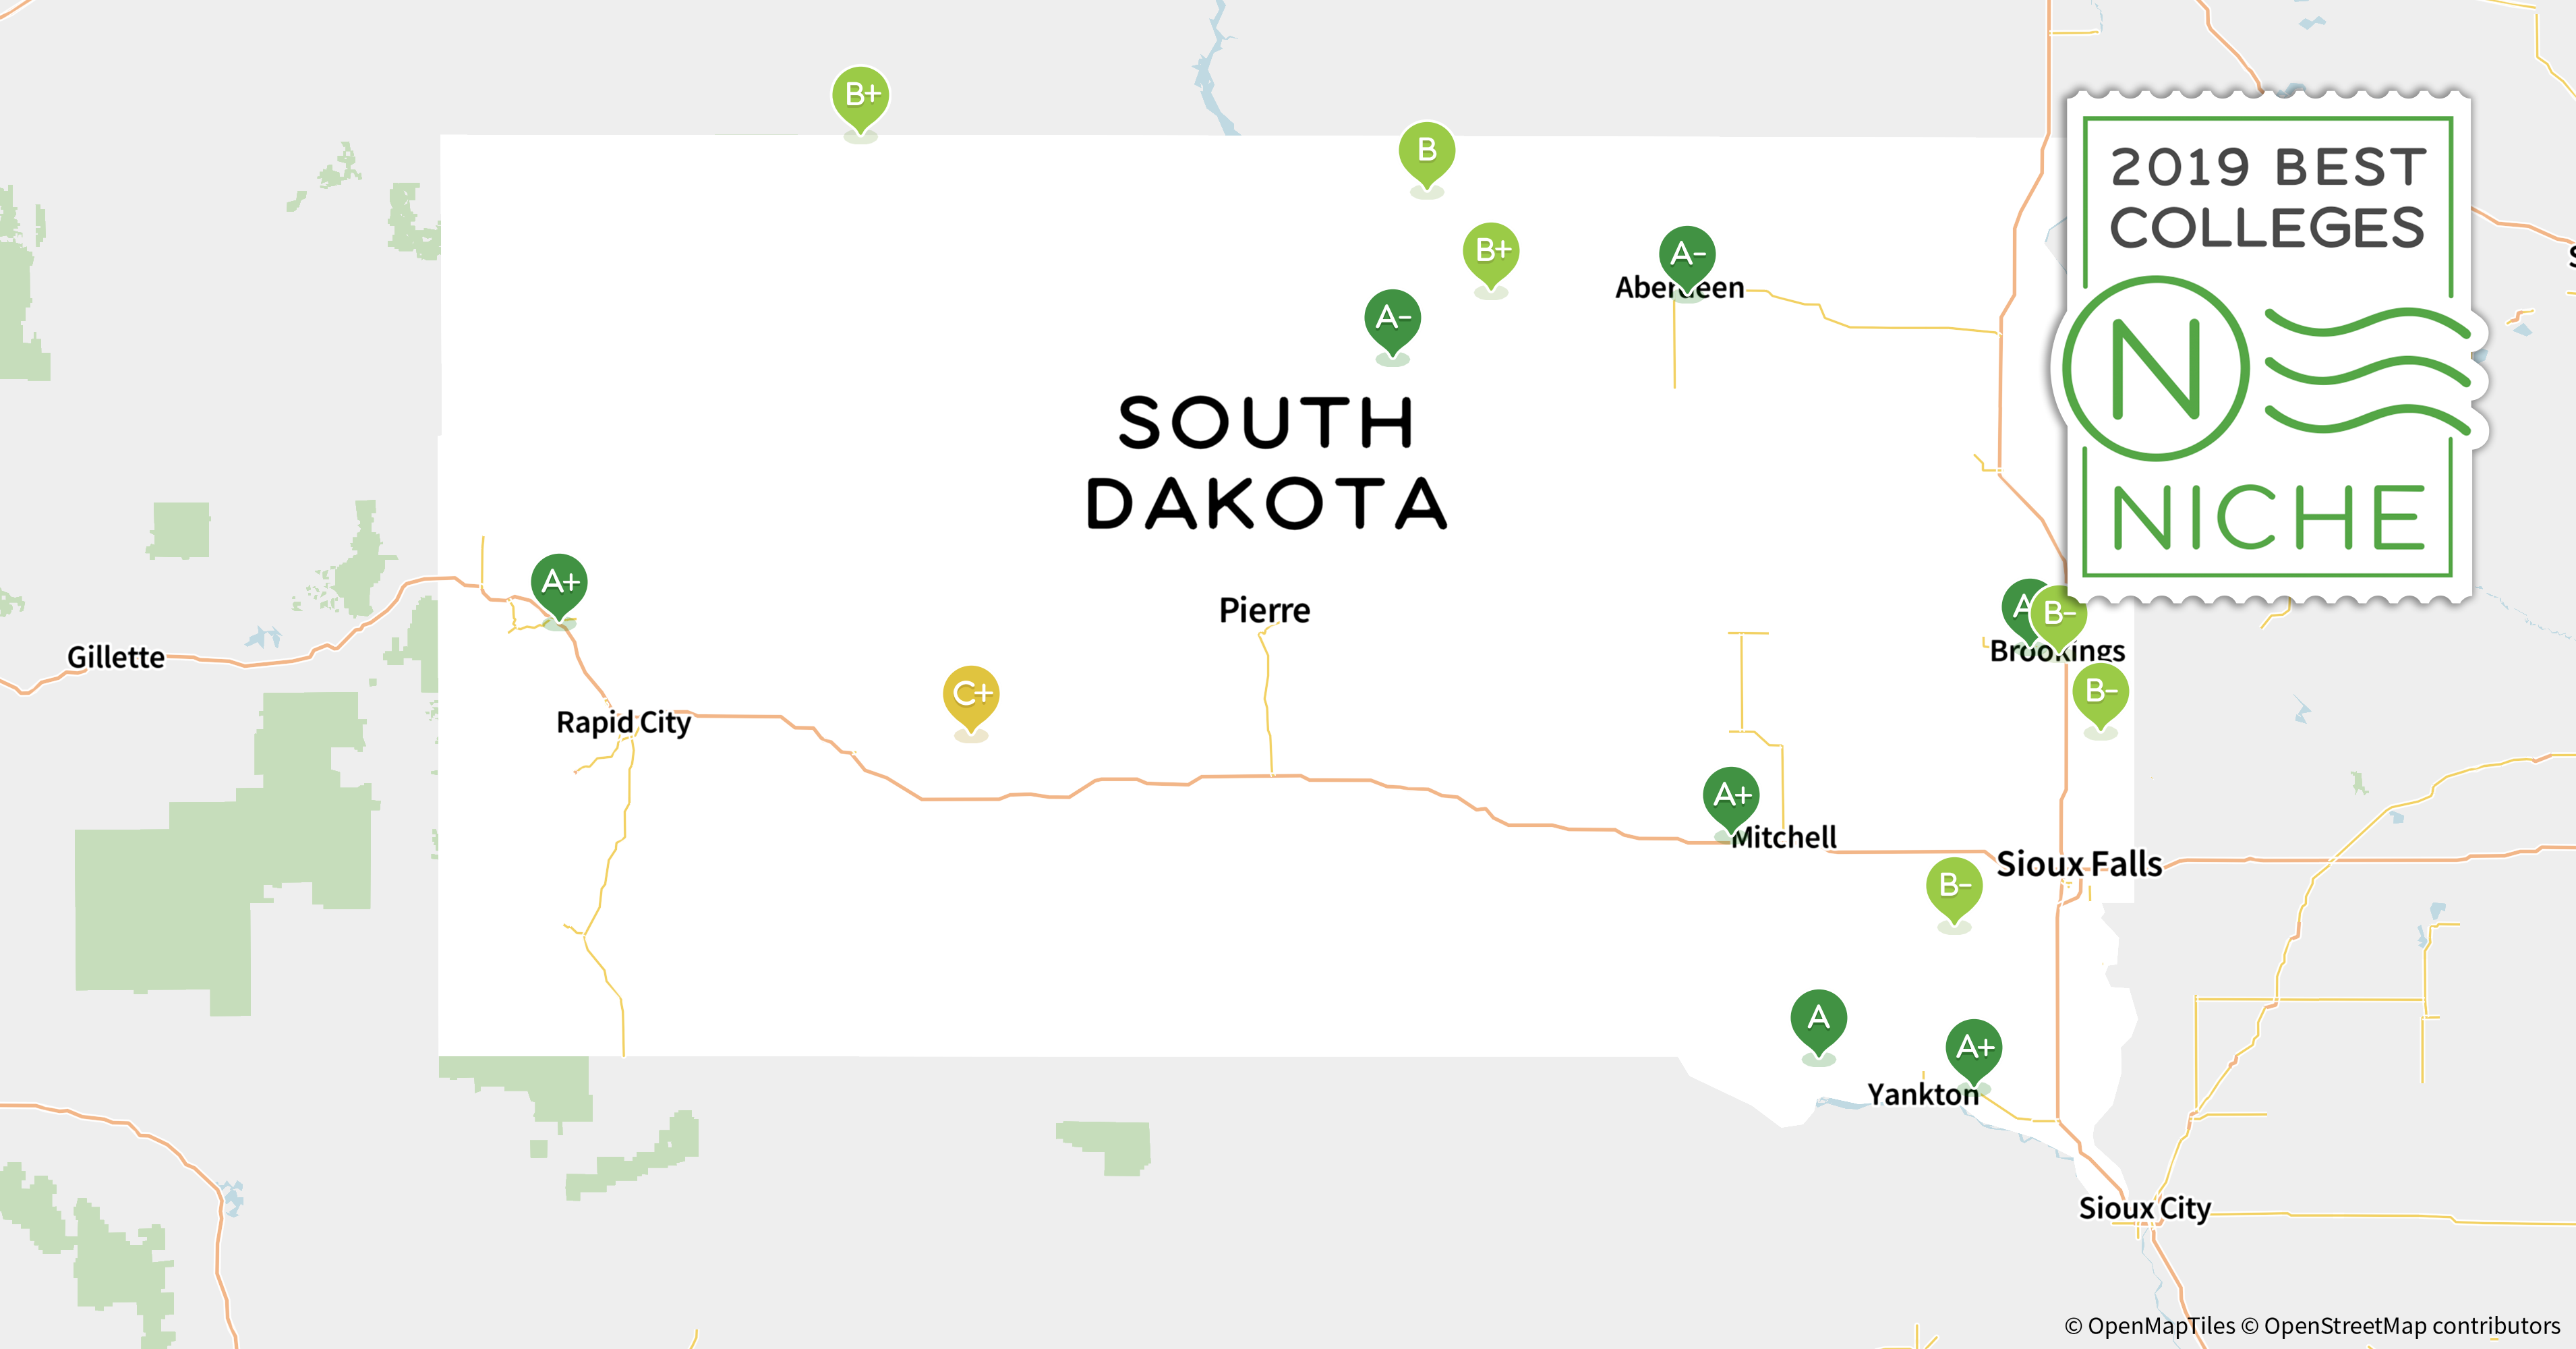 2019 Best Colleges in South Dakota - Niche